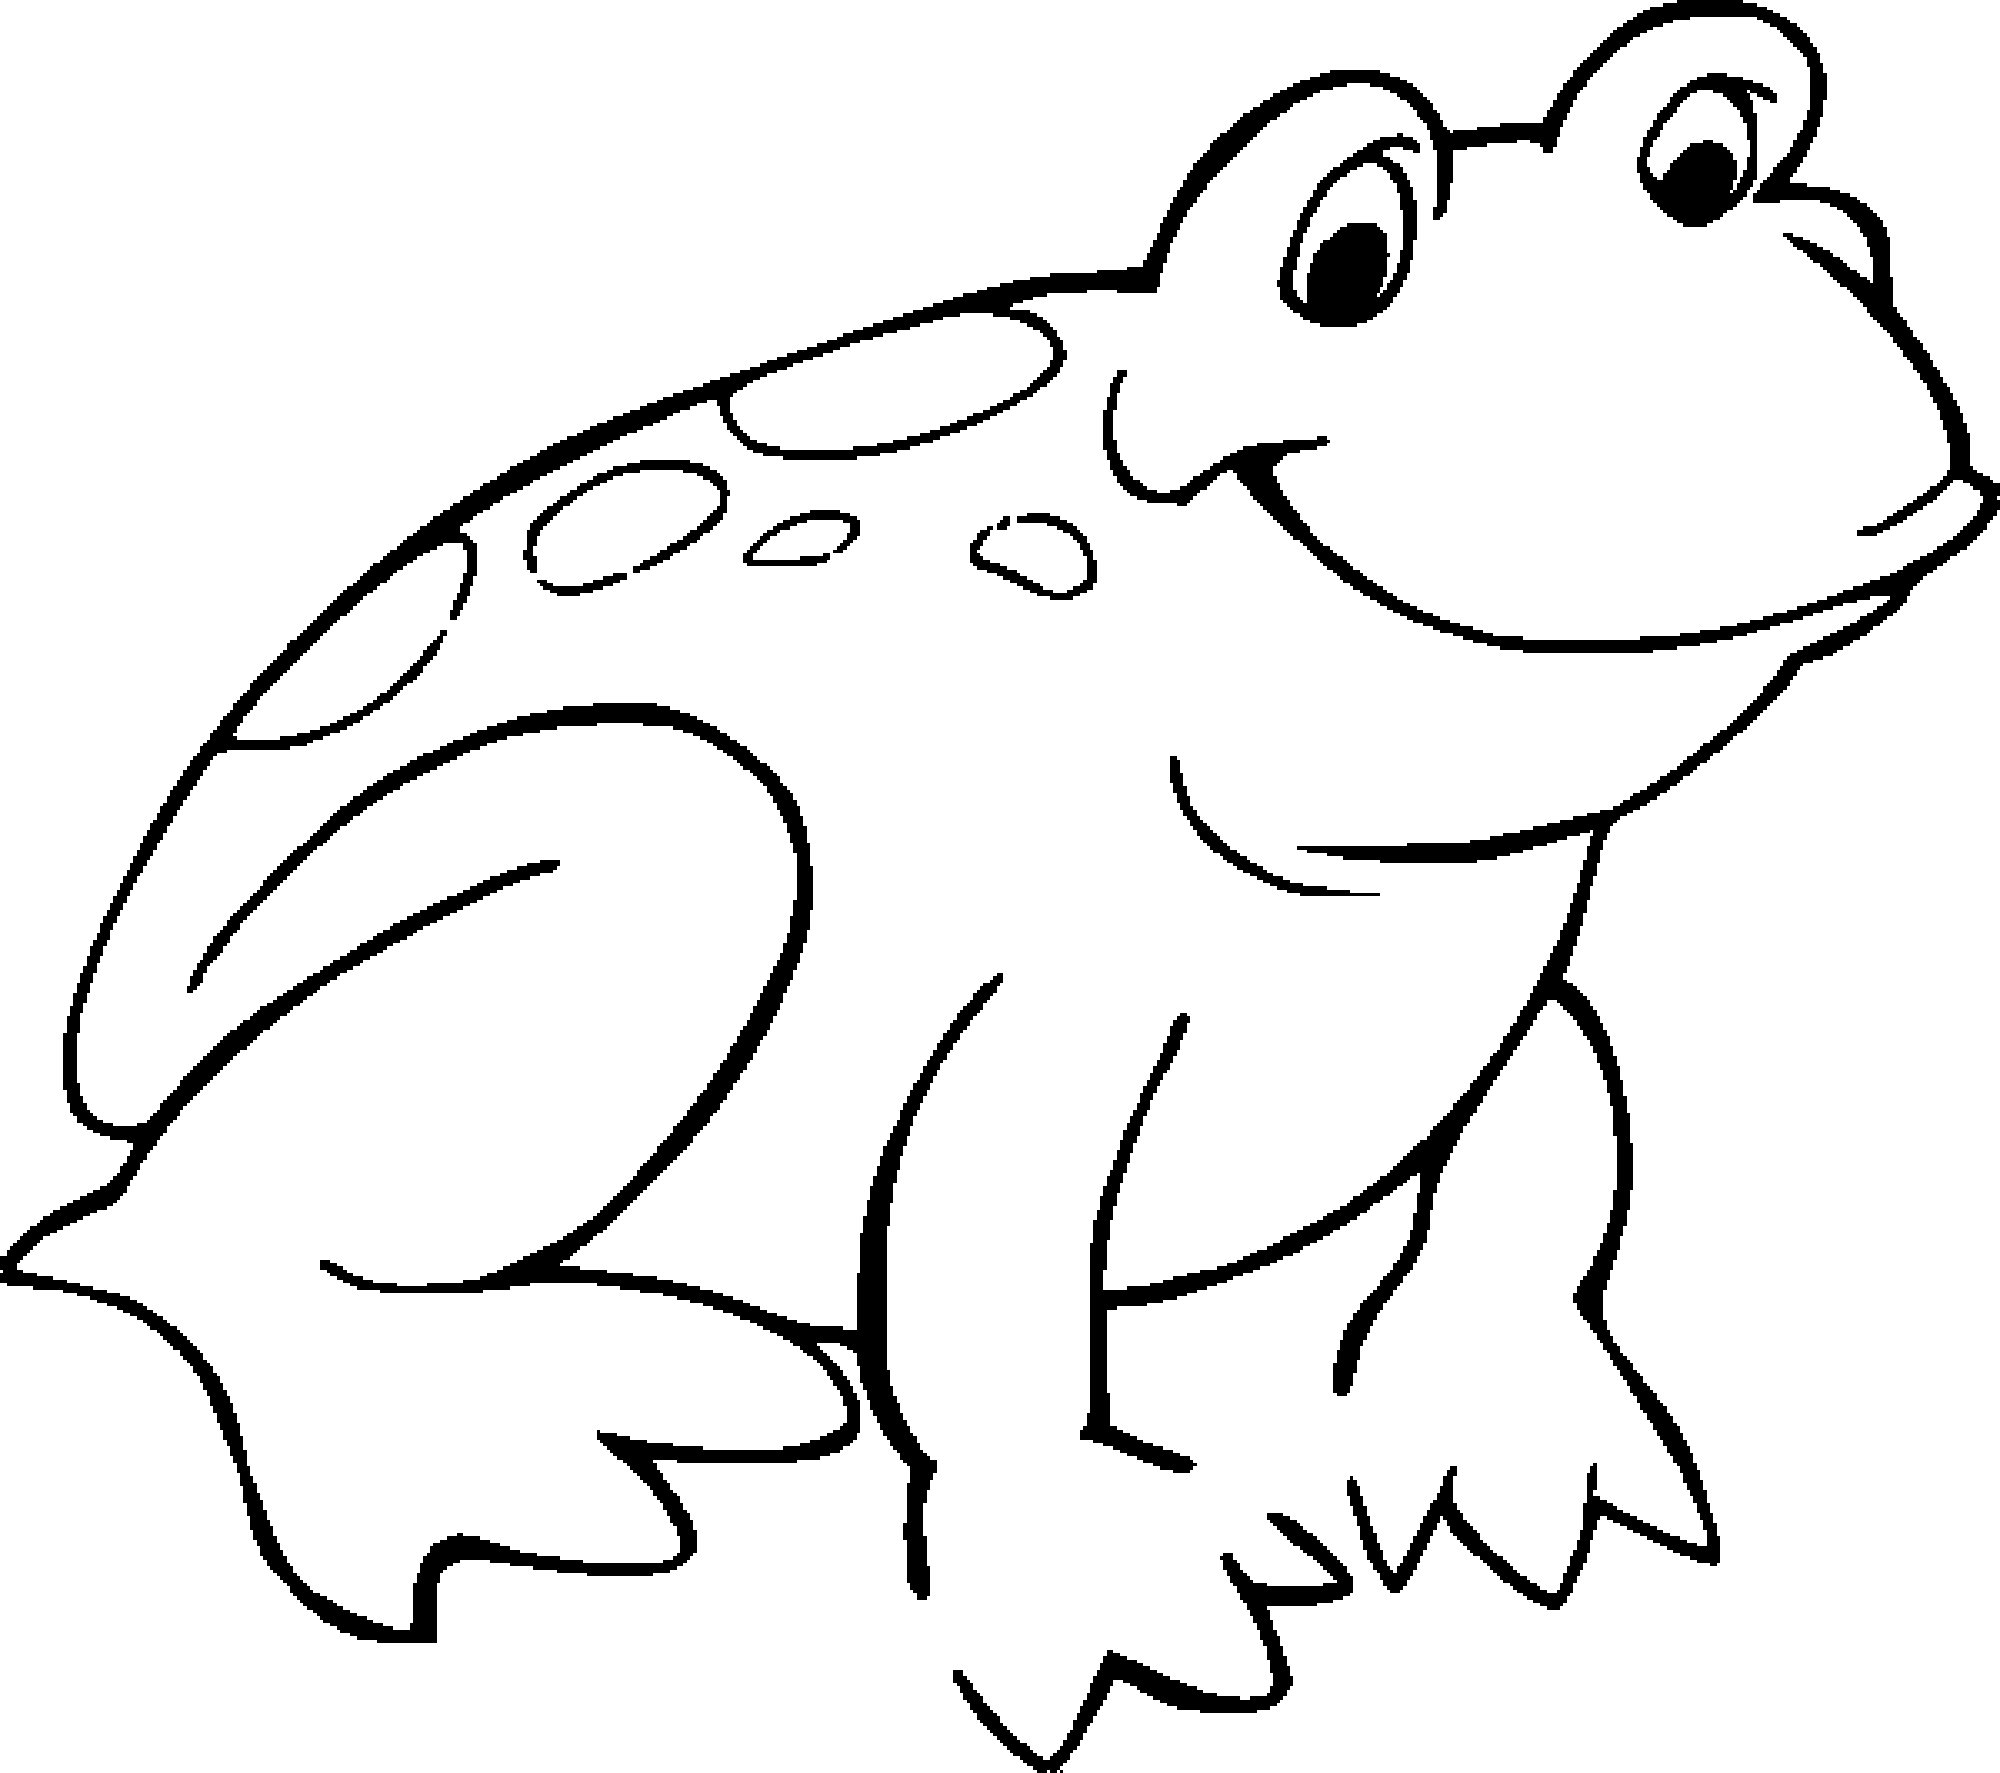 frogs to color for free frogs coloring pages to download and print for free for free color to frogs